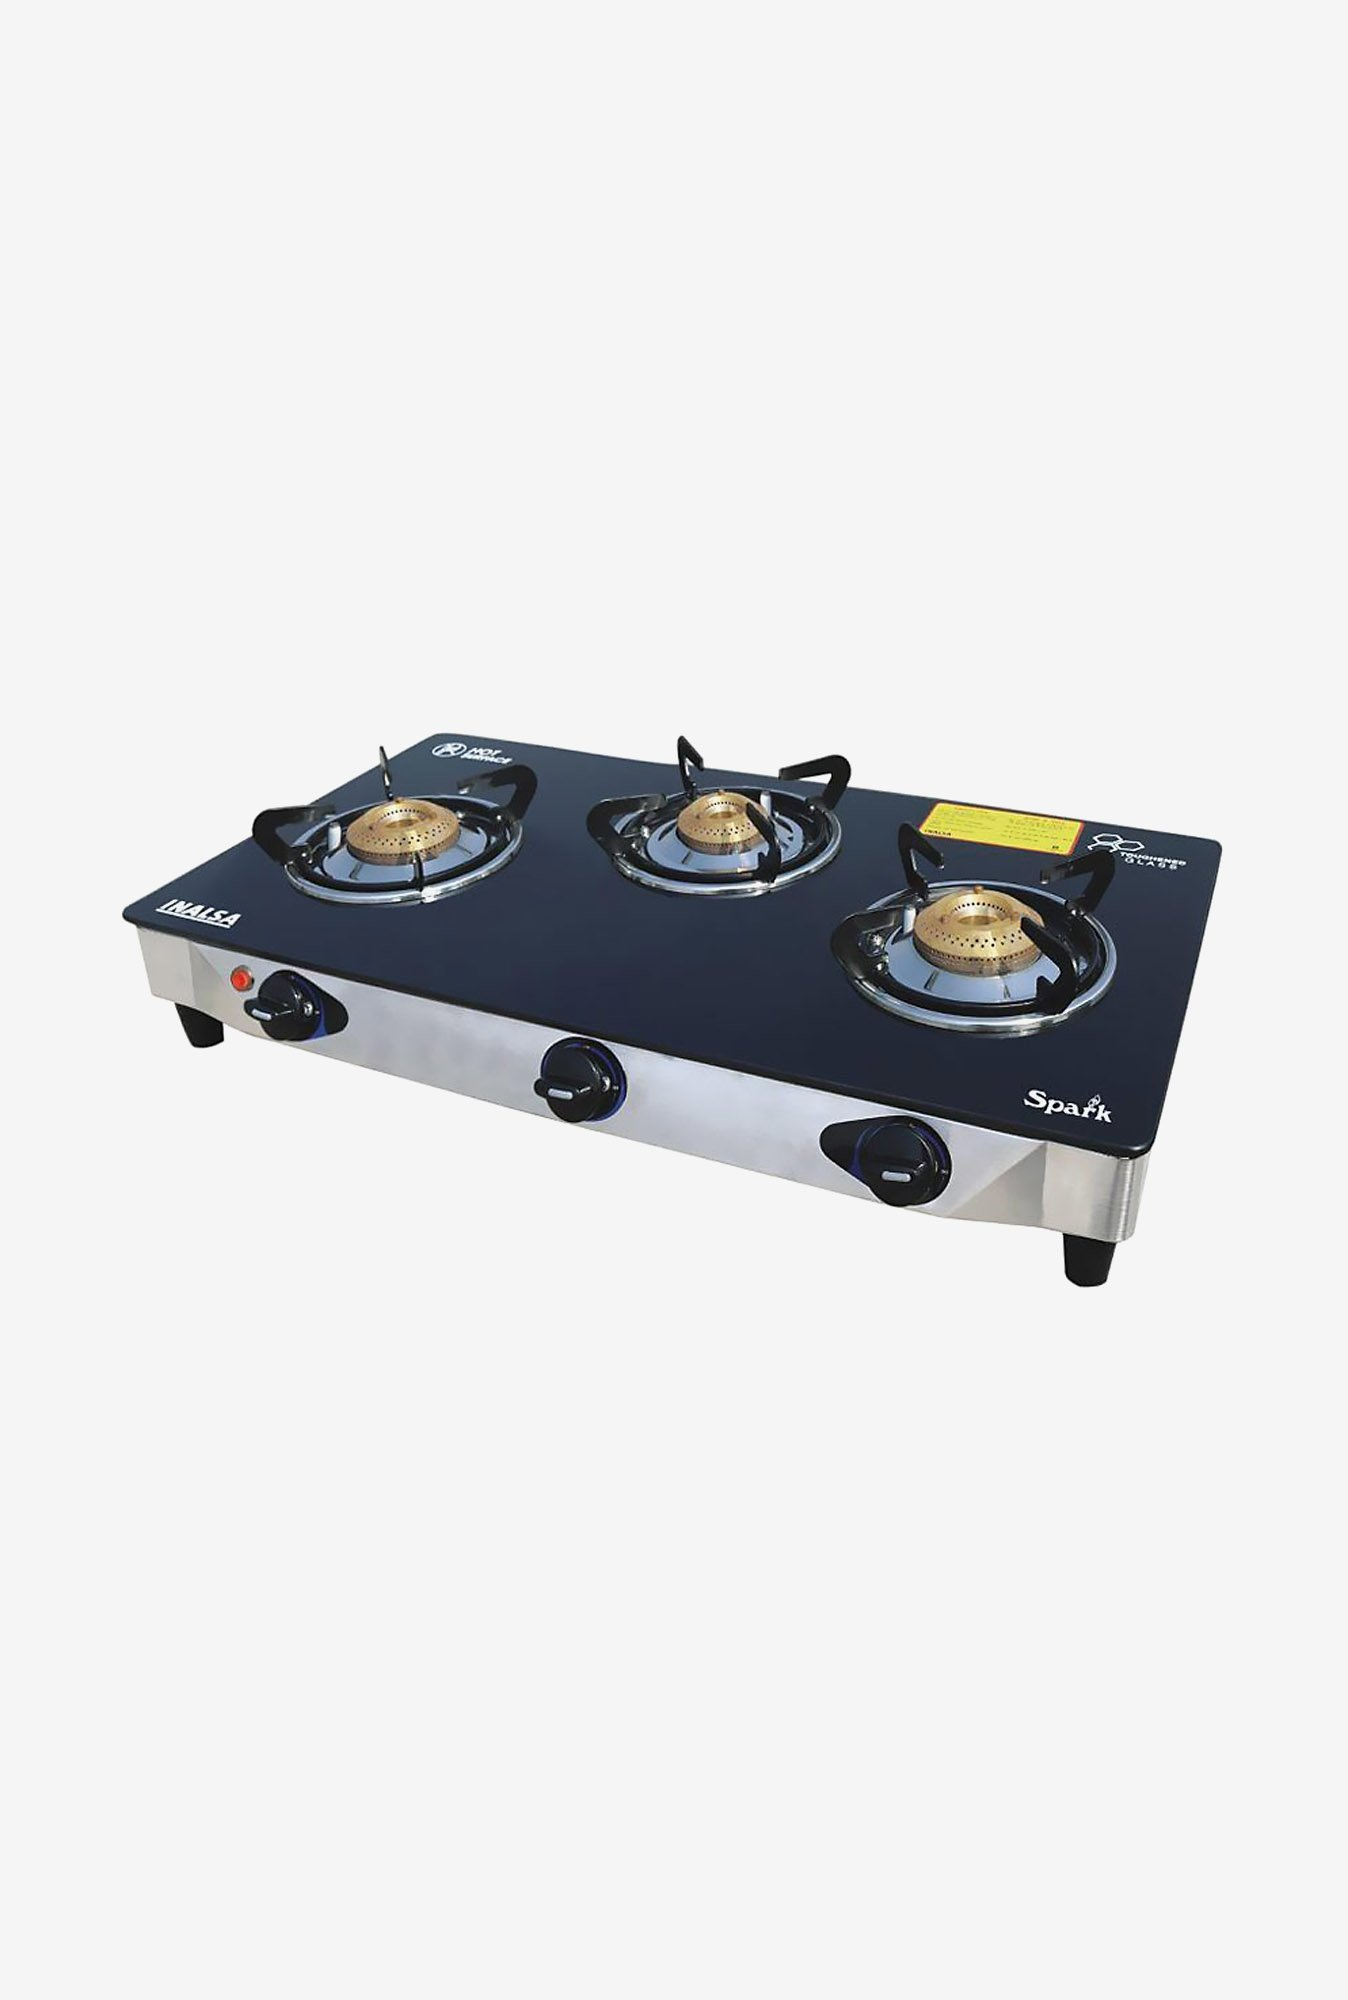 Inalsa Spark SS 3 Burner Gas Cooktop Black